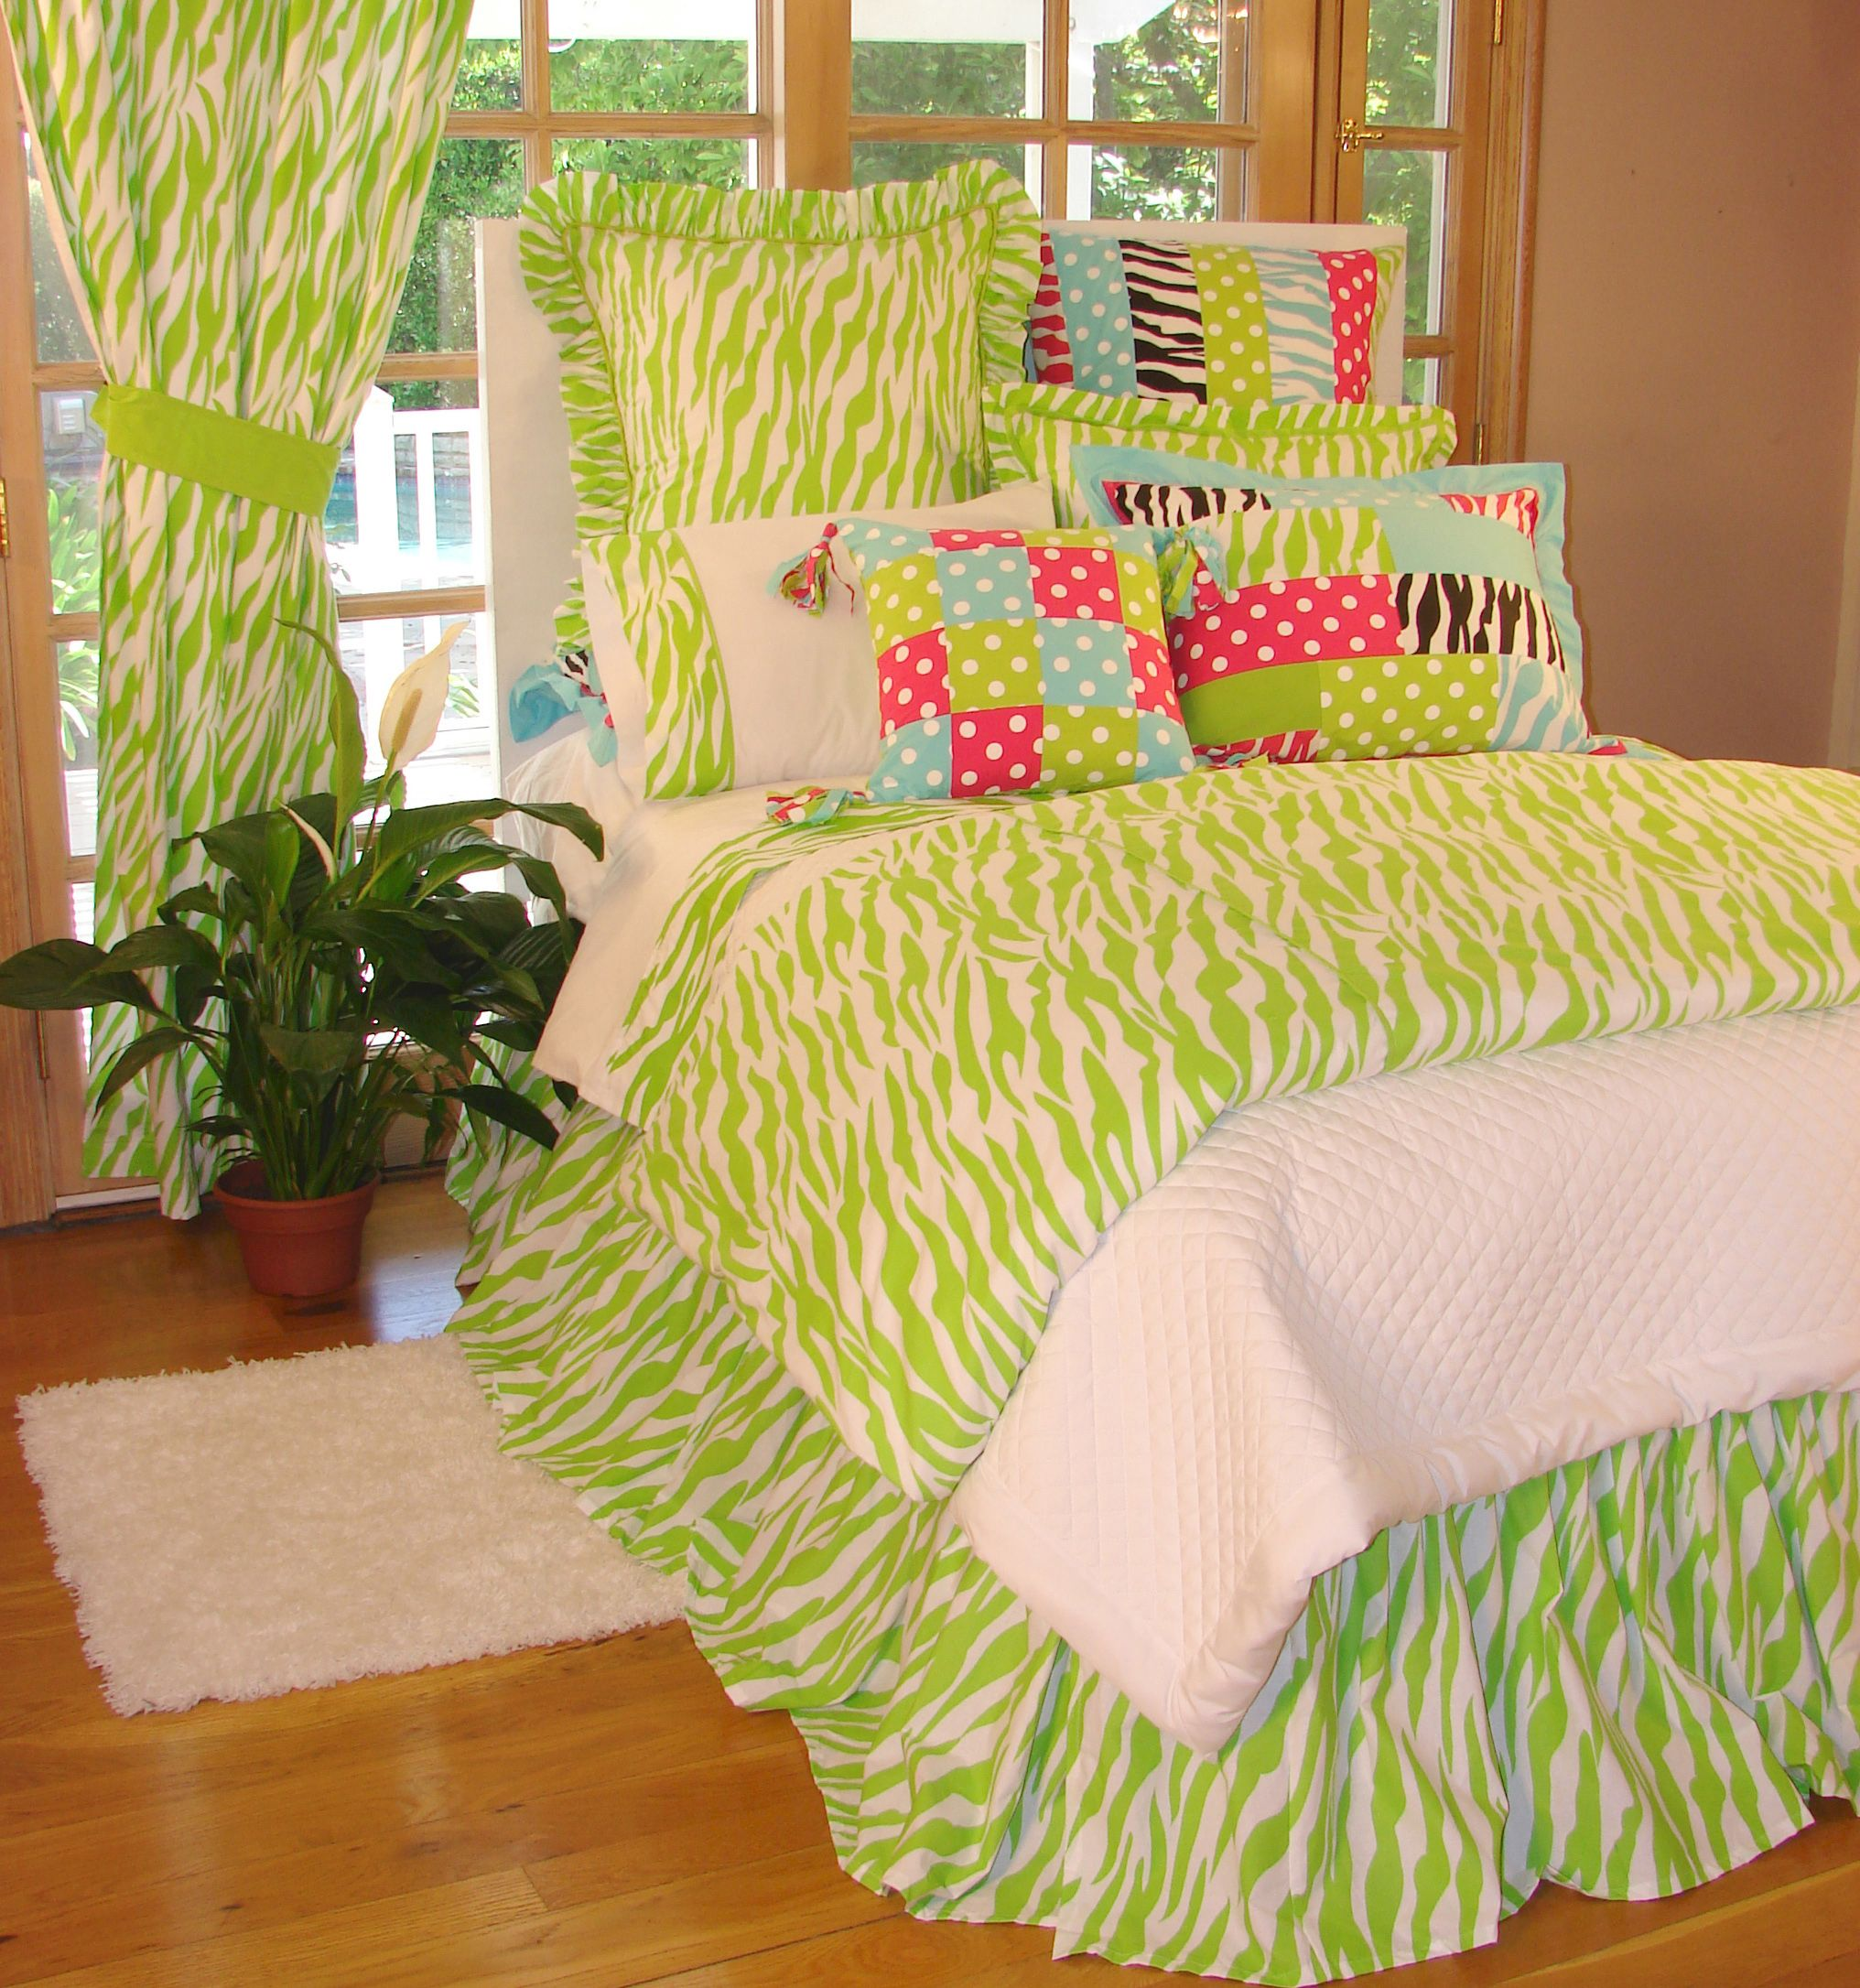 Outrageous Green And Brown Bedroom: Pin On Teen Bedrooms